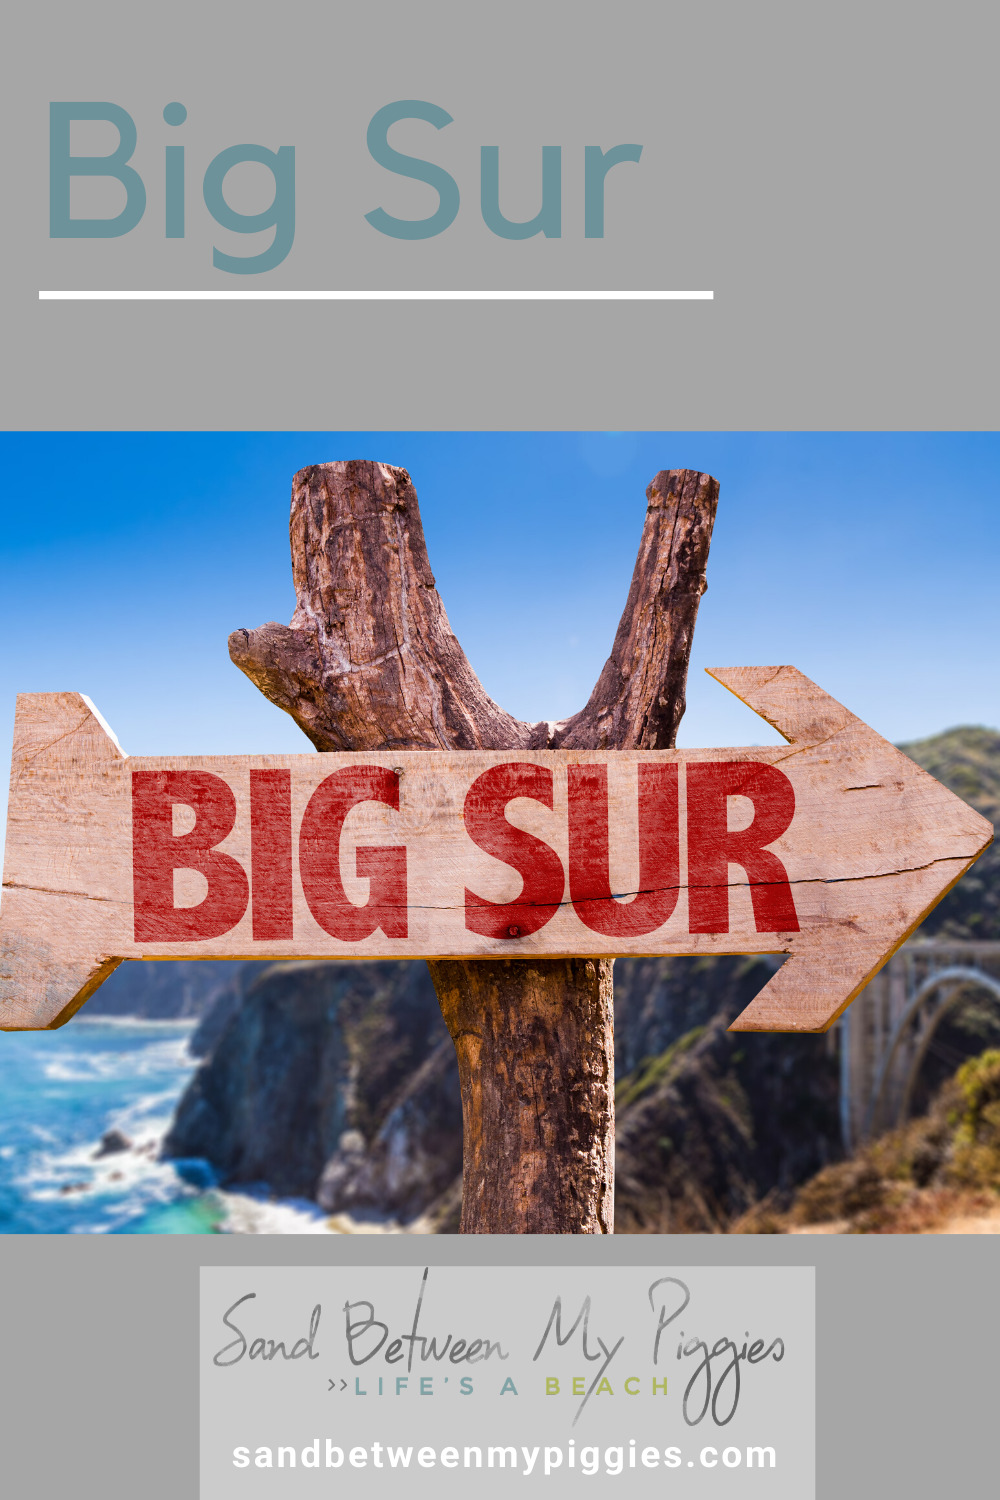 If you are a fan of dramatic coastline views with steep cliffs and rolling green hills, Big Sur is calling your name. Add it to your list of must-see places on the West Coast. #coastaltowns #coastalvacations #bigsur #california #sandbetweenmypiggiesblog